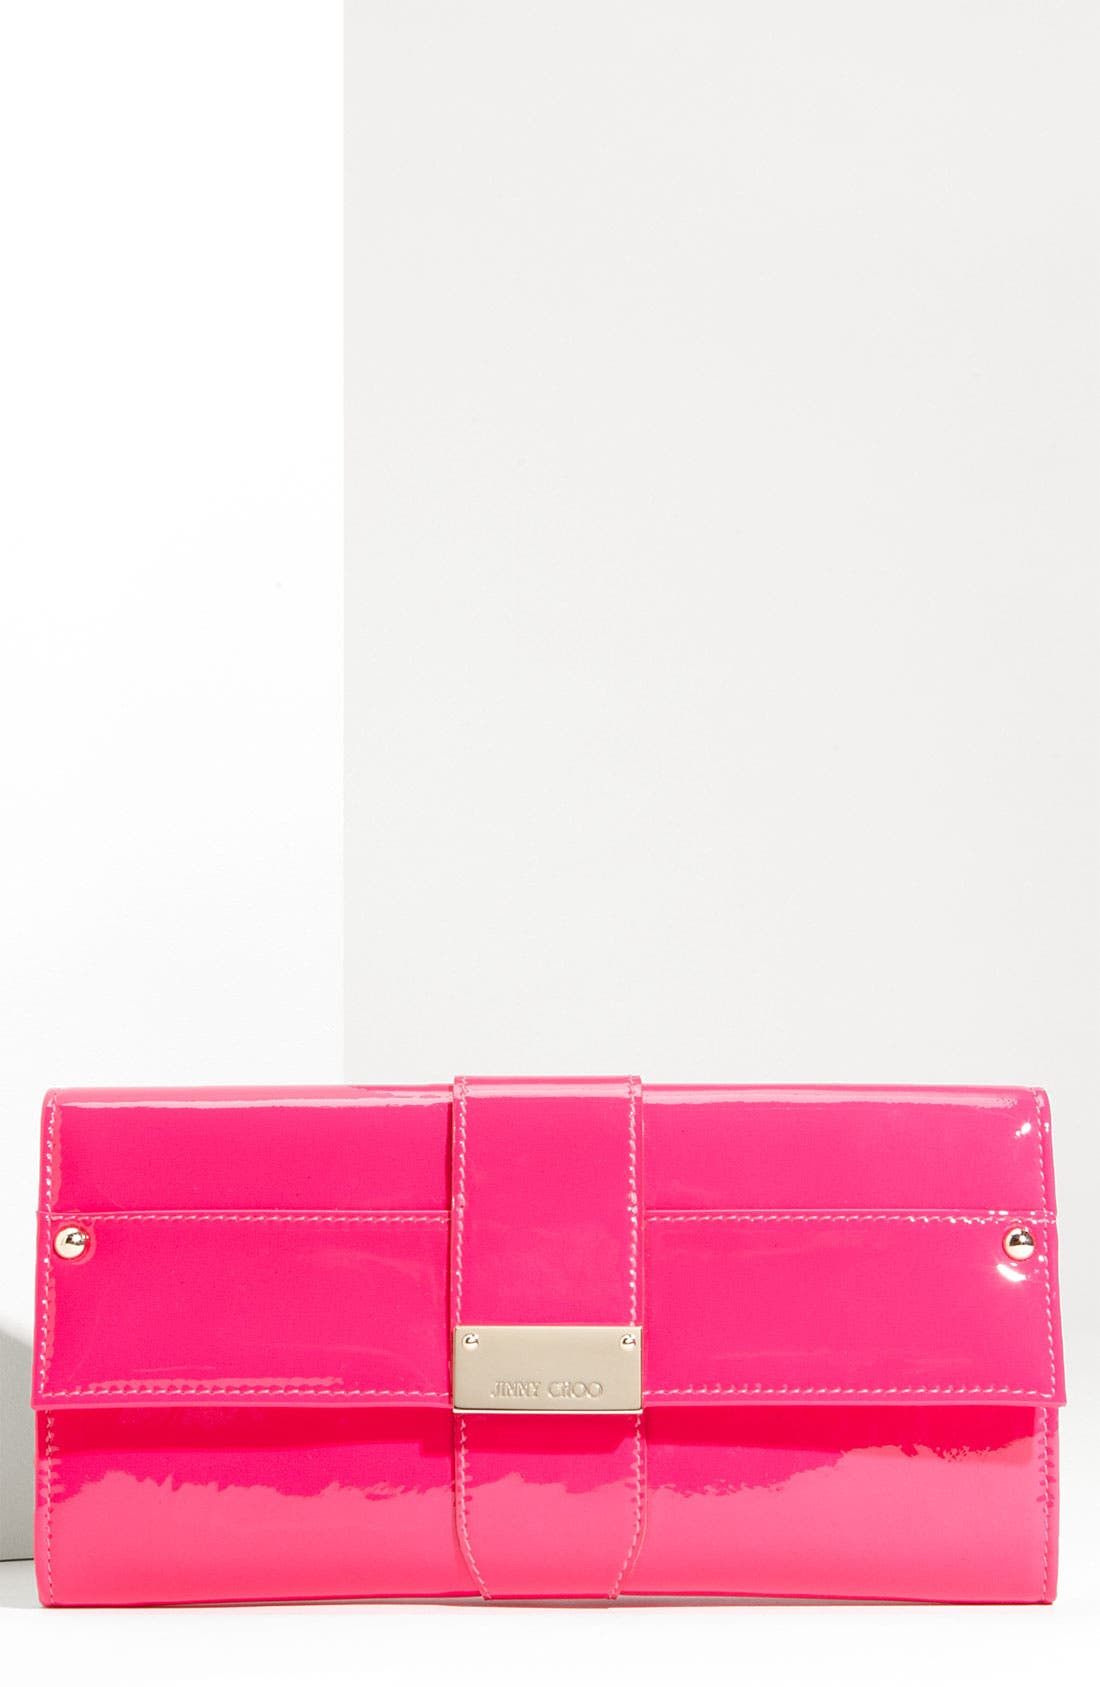 Main Image - Jimmy Choo 'Ubai' Patent Leather Clutch